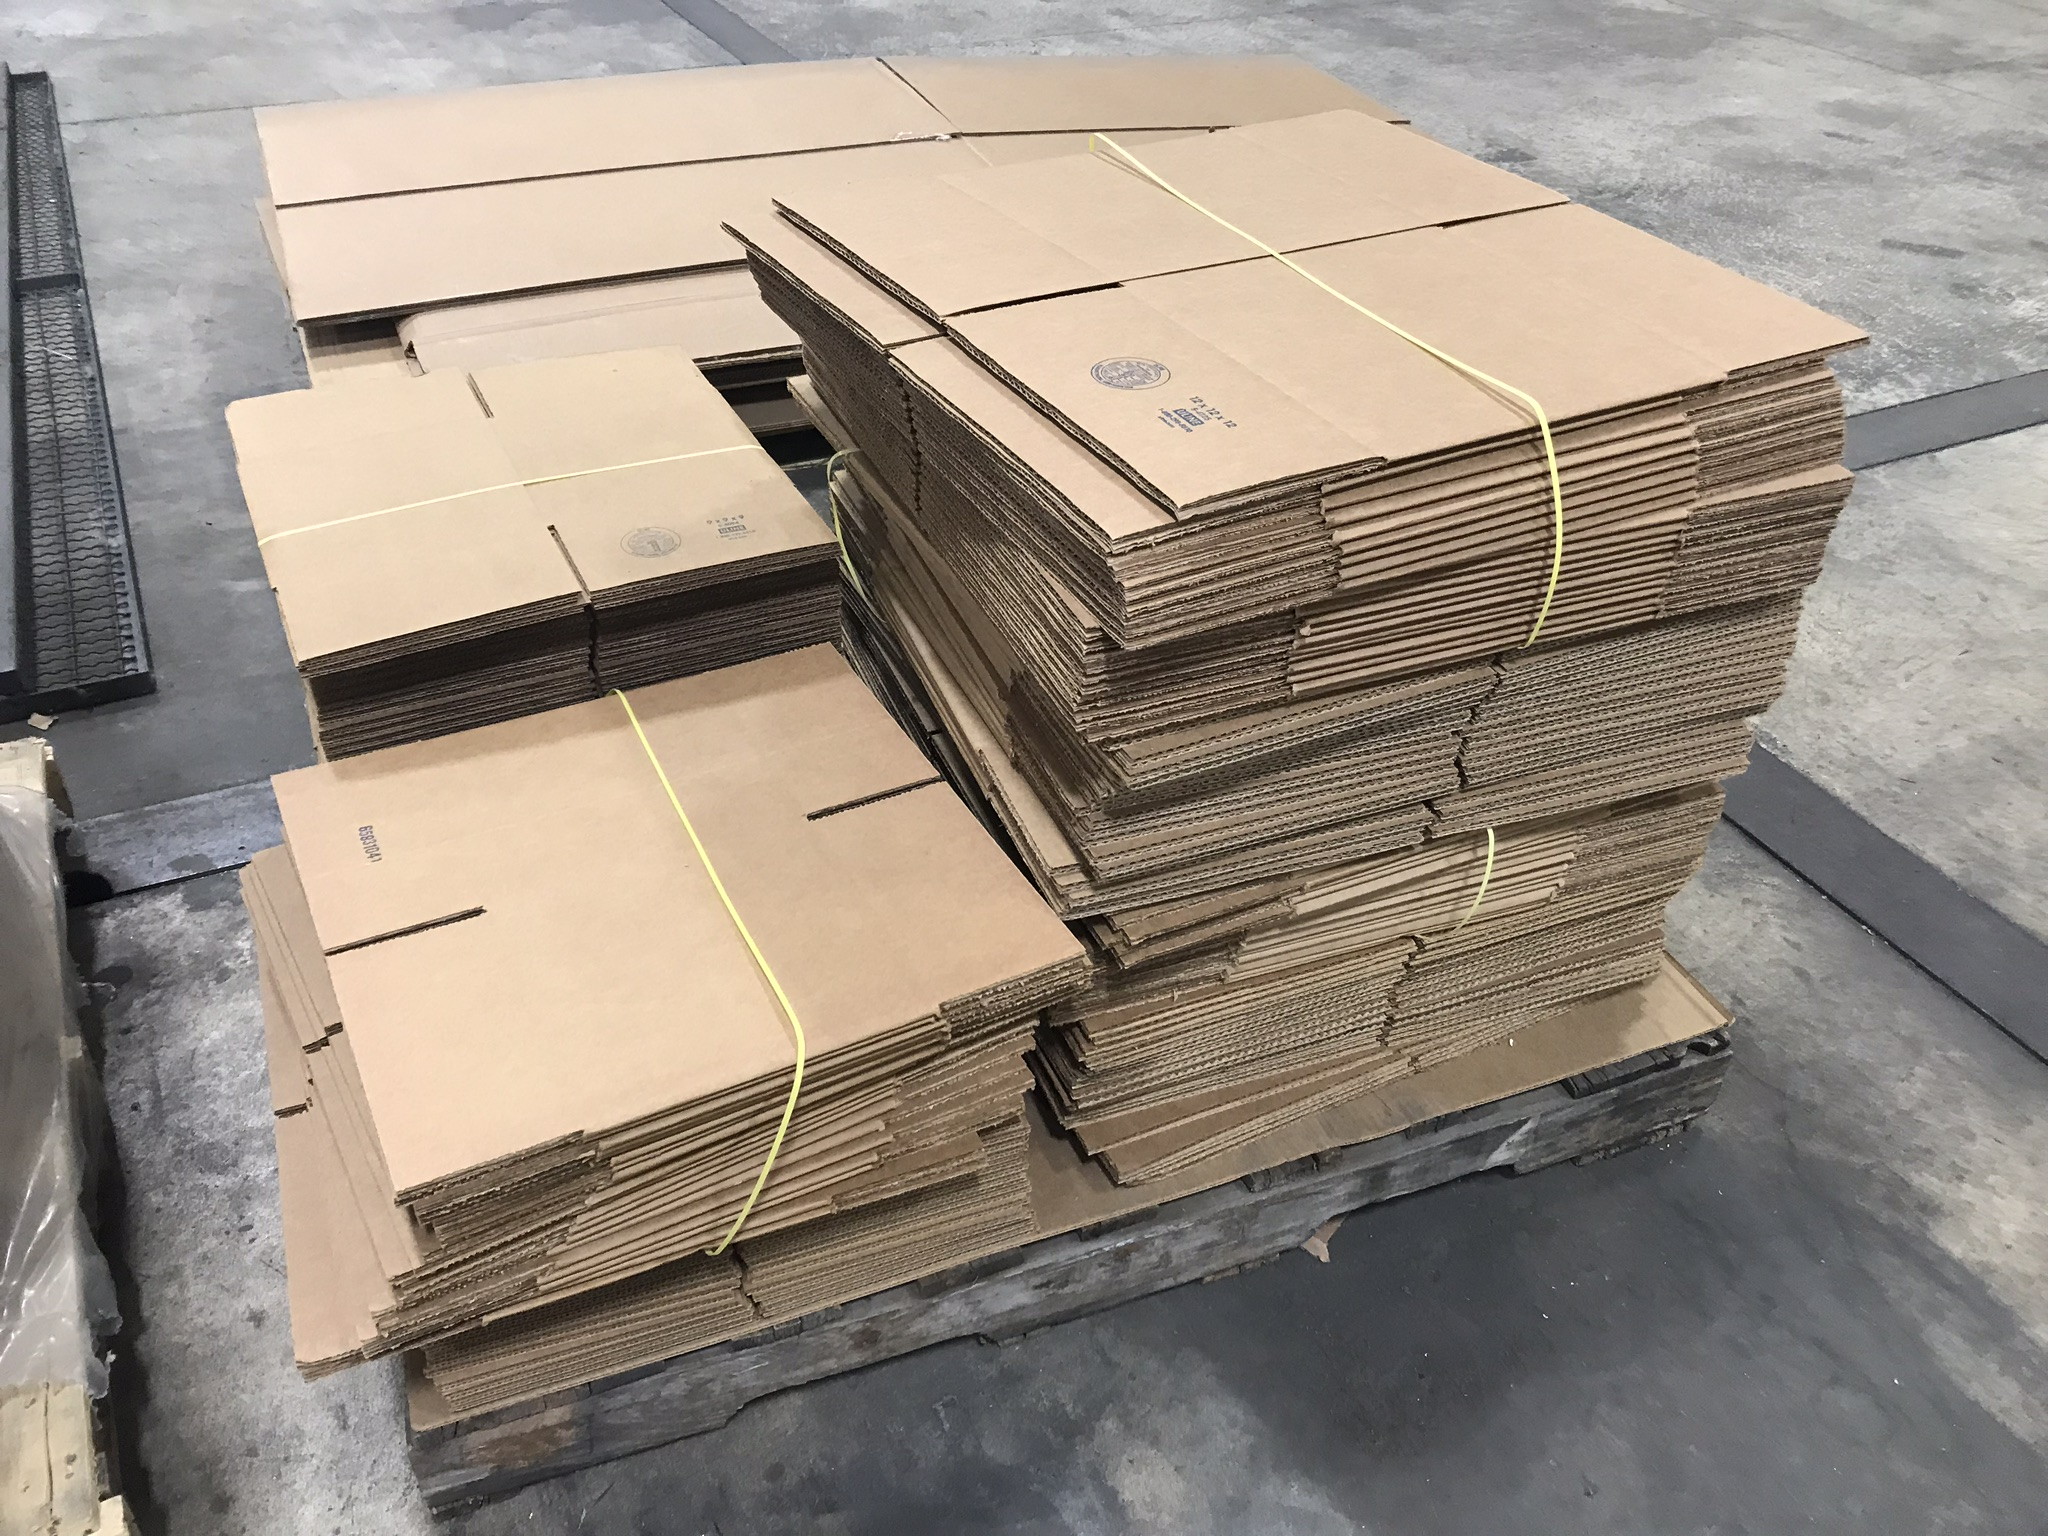 "Lot-Shipping Boxes, 9"" x 9"" x 9"", 24"" x 18"" x 12"", 12"" x 12"" x 12"", and Extra Long Boxes - Image 7 of 7"